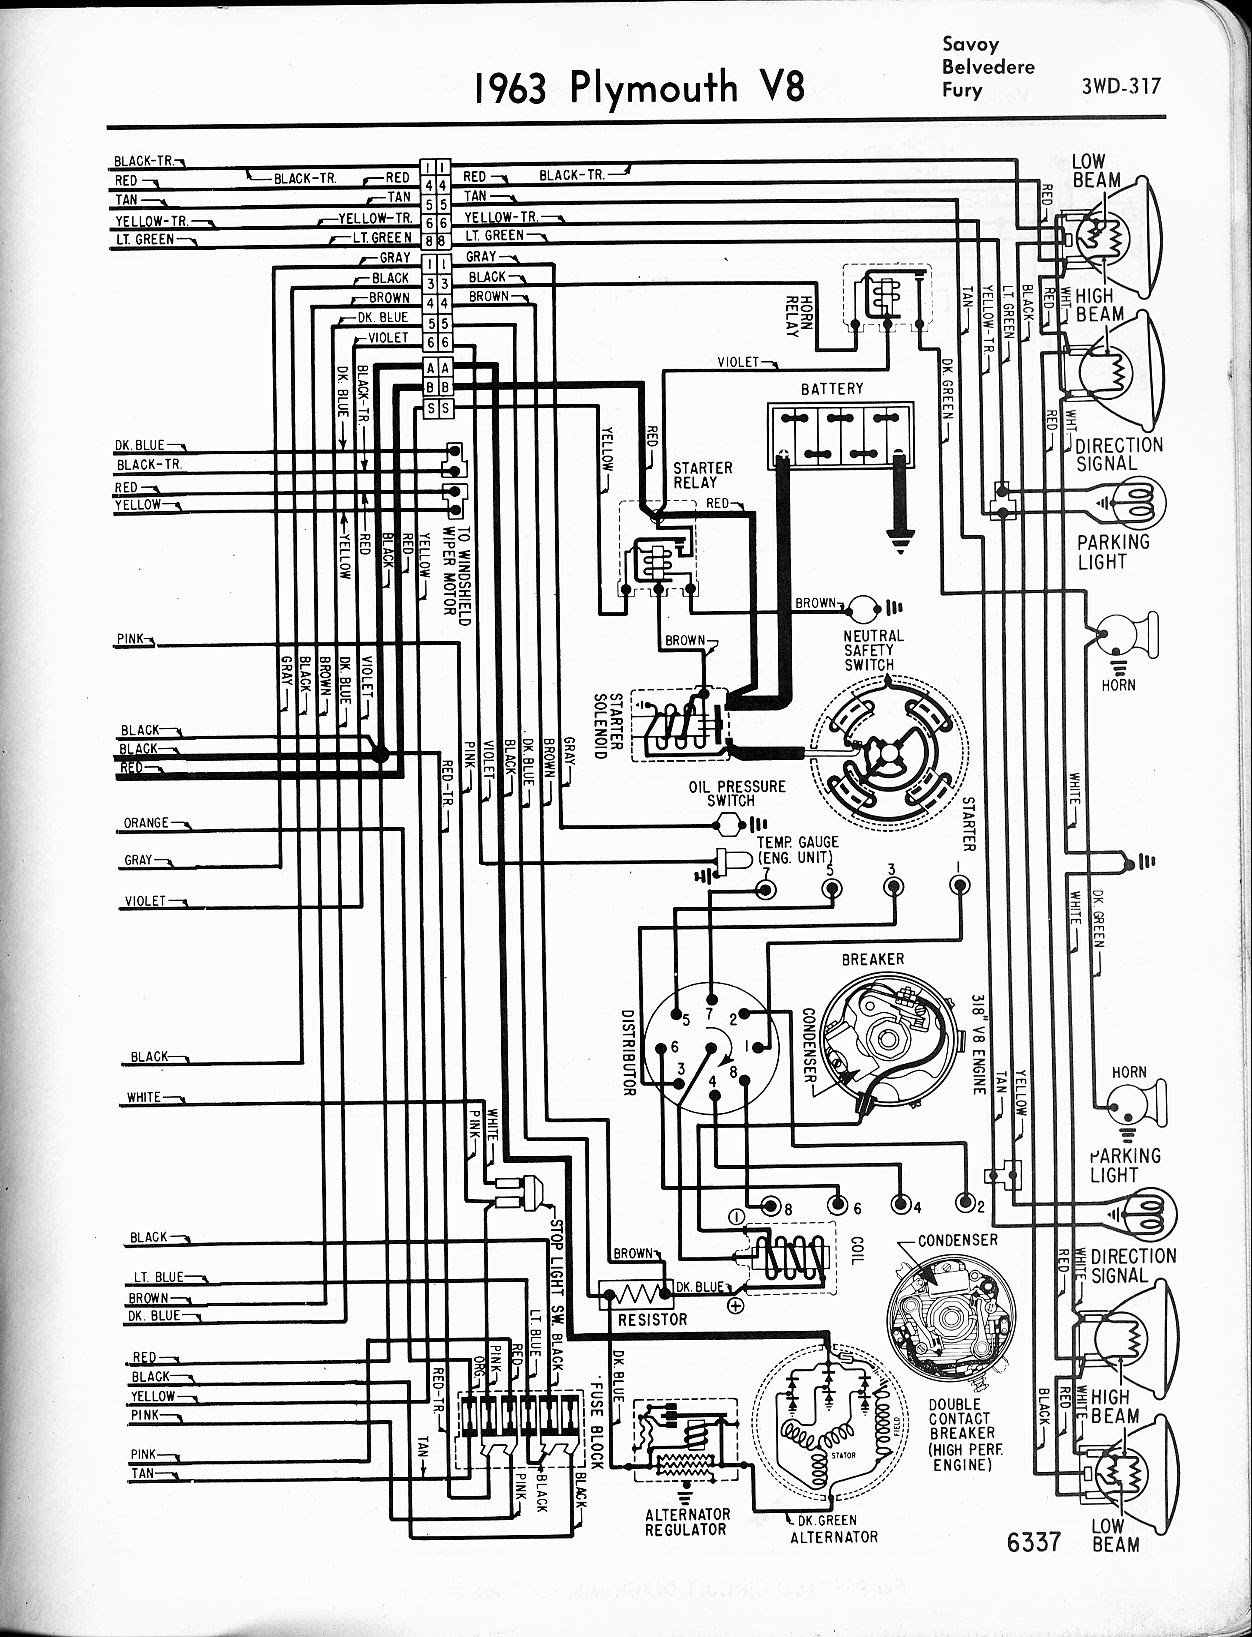 18353 1956 Plymouth Belvedere Wiring Diagram Wiring Resources